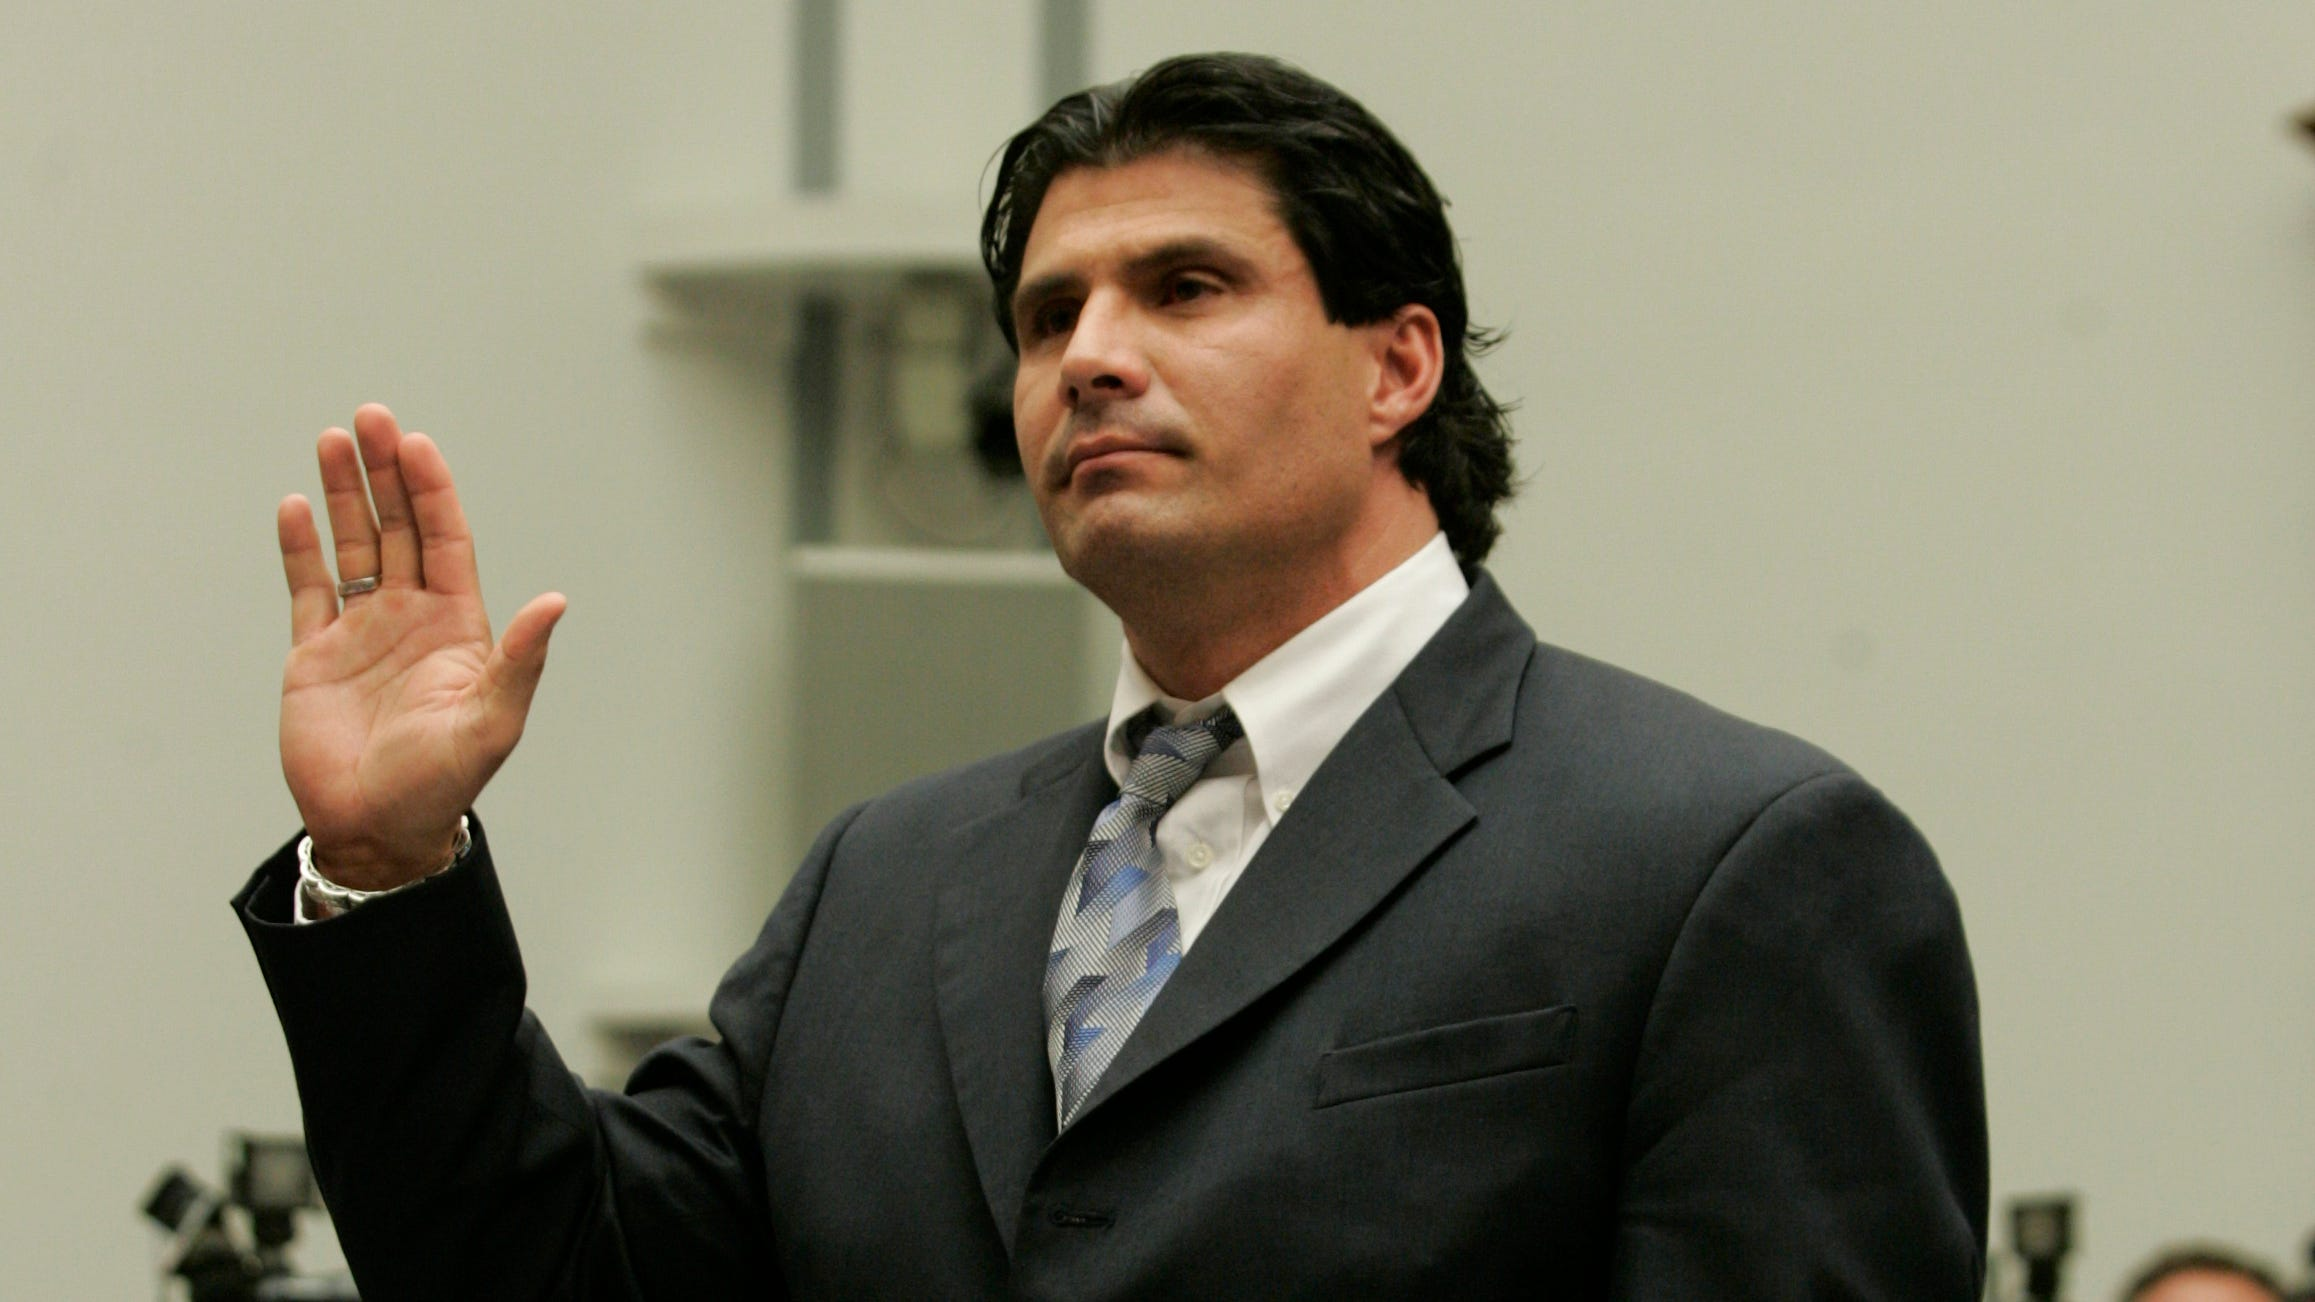 Jose Canseco is sworn in before he testifies before Congress during a 2005 hearing on steroid use in Major League Baseball.